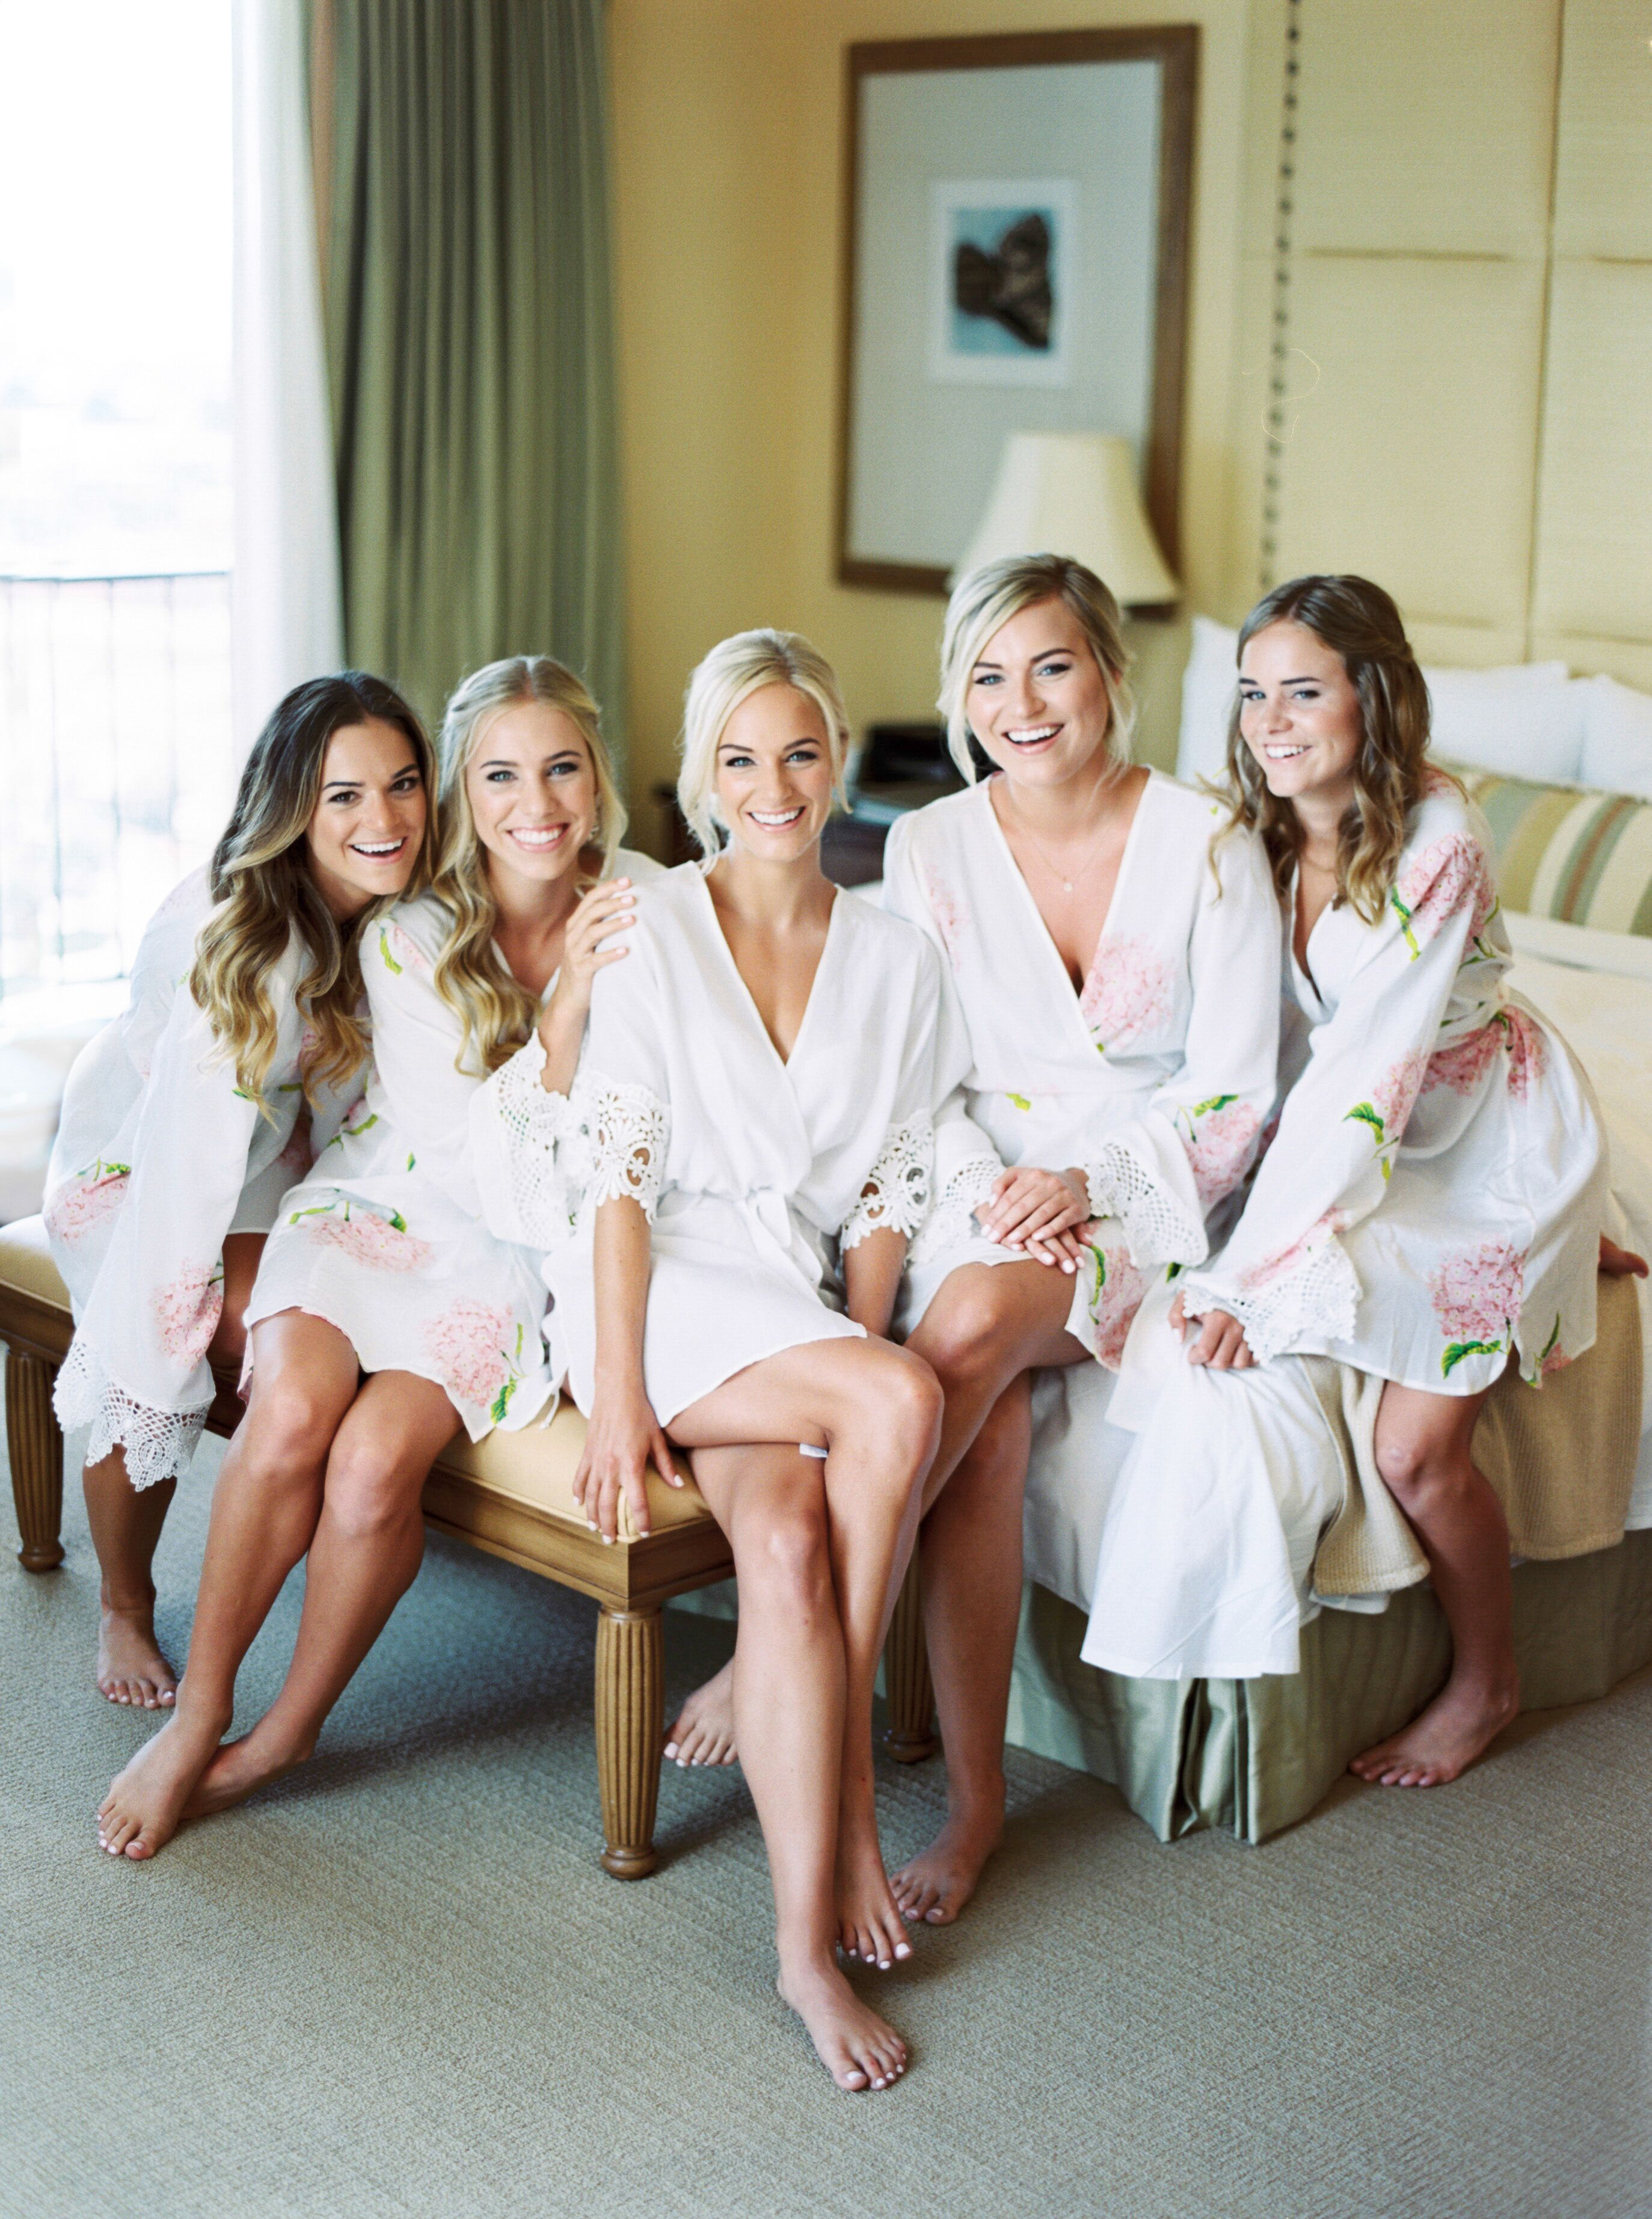 Romantic Hotel Room Ideas: Bridesmaids In Silk Robes Getting Ready